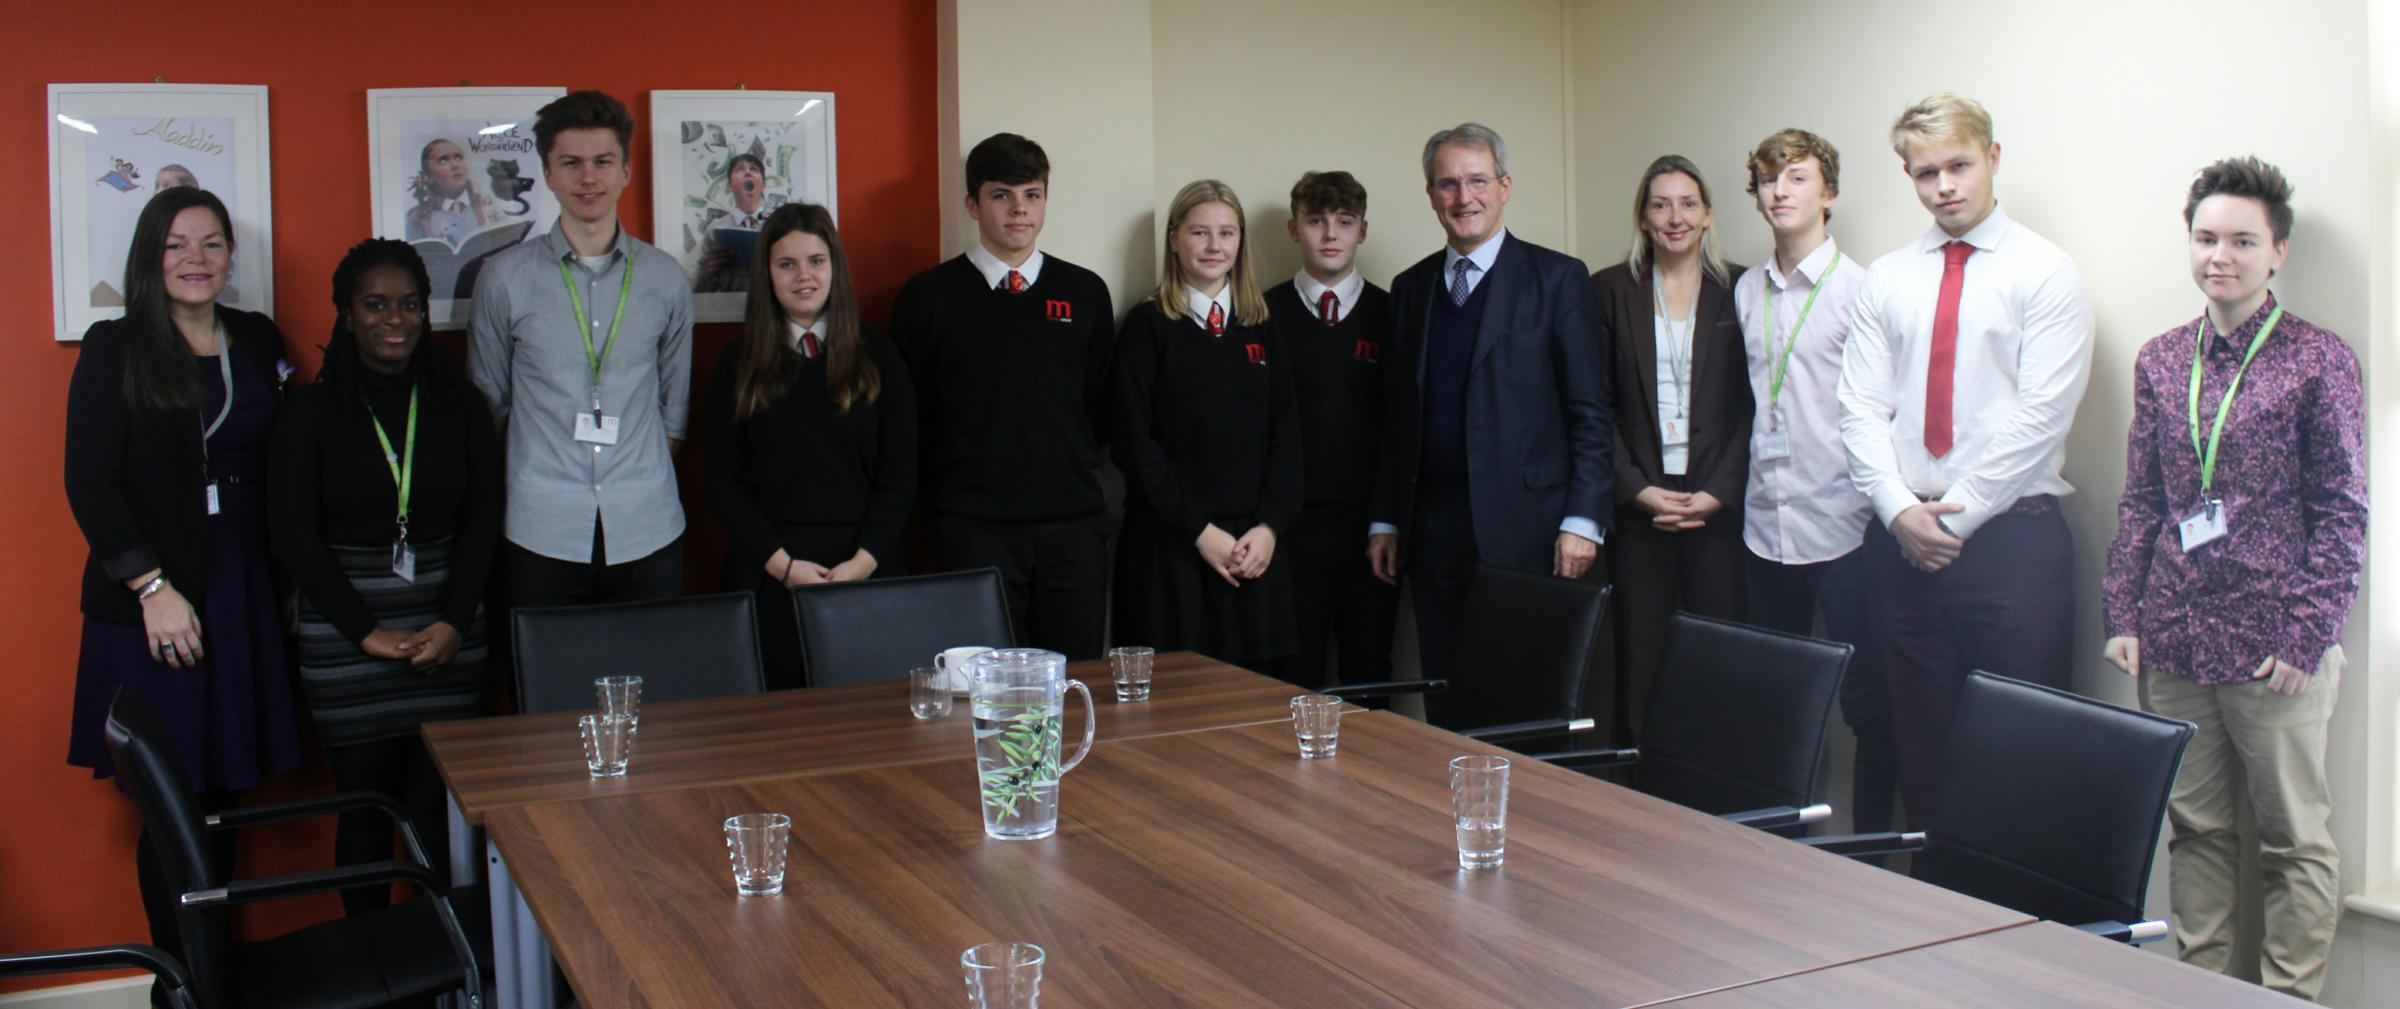 Marches students with MP Owen Paterson